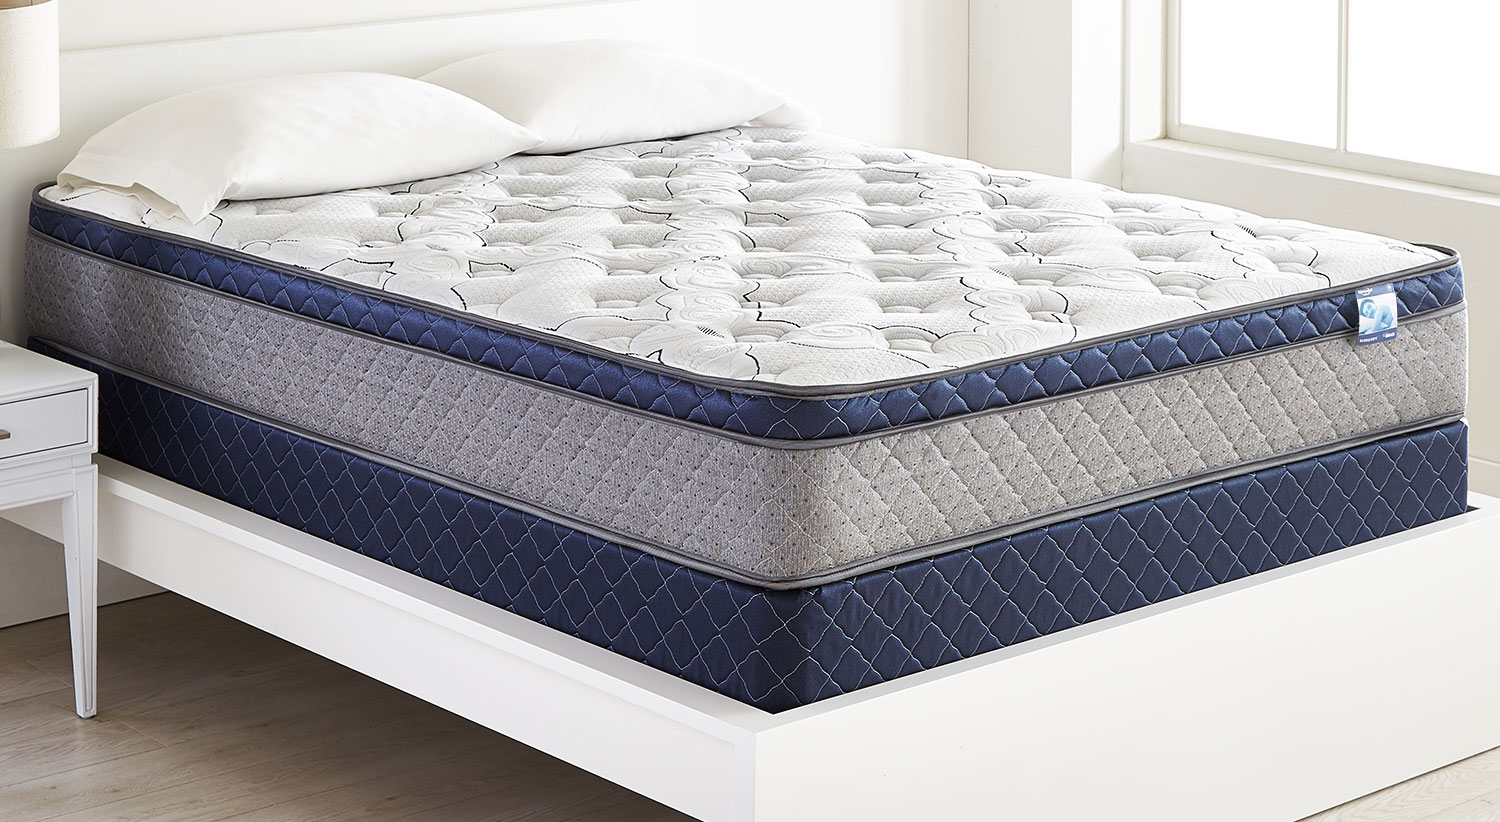 Mattresses and Bedding - Springwall Burberry Euro-Top Firm Full Mattress Set